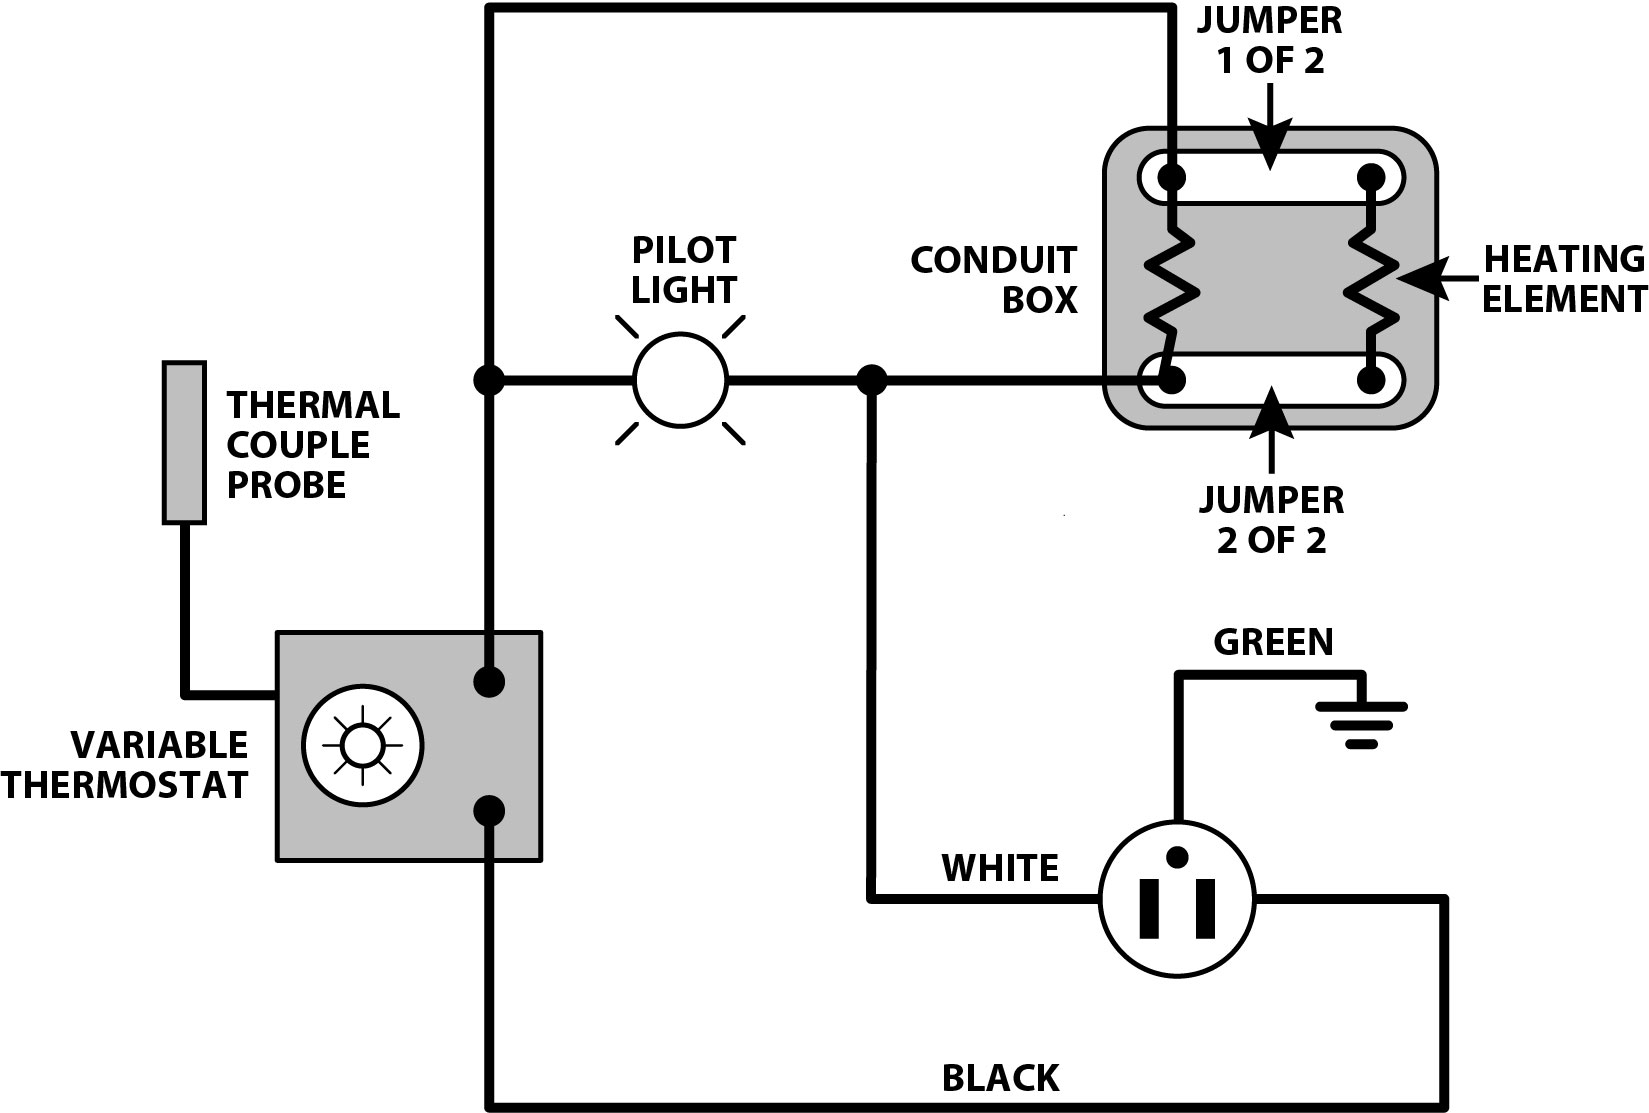 Heat Pump Electrical Schematic Diagram 240v, Heat, Free